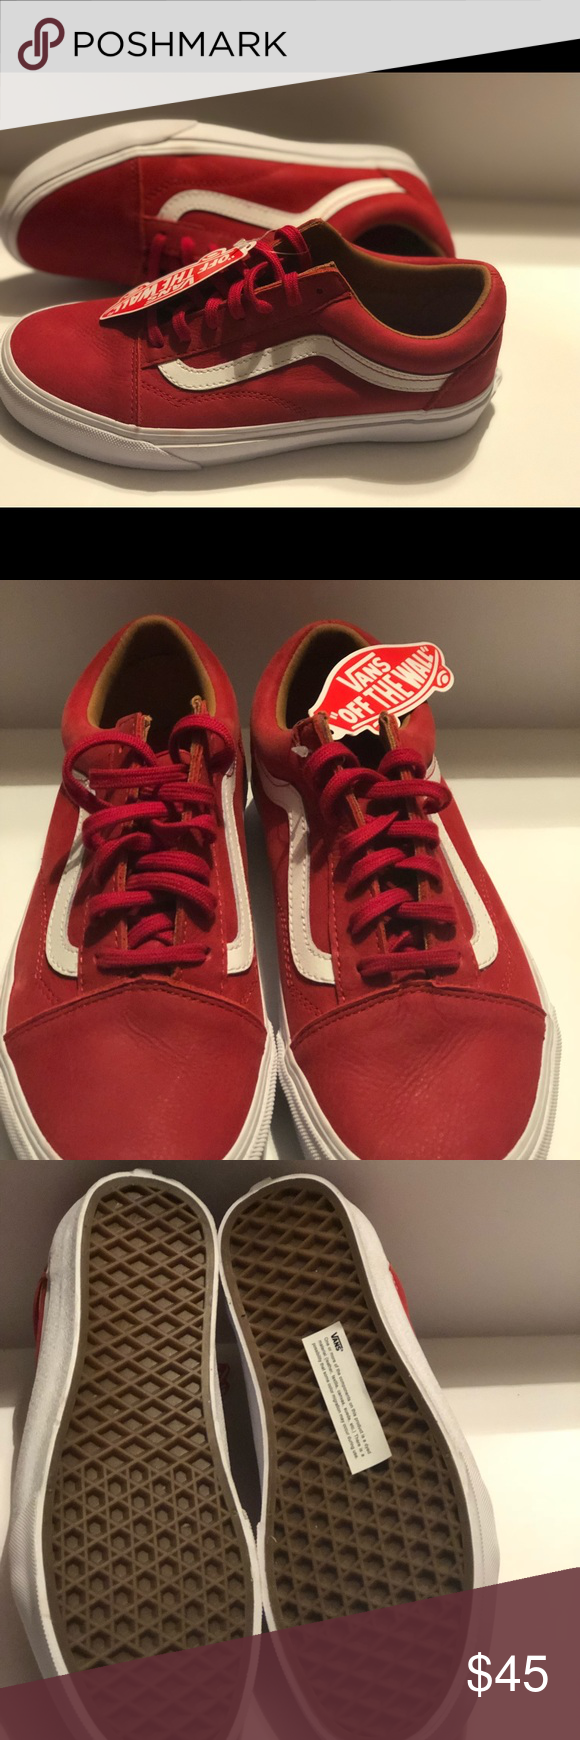 f49e5613d9346e Red leather Vans Vans Old Skool Premium Leather Racing Shoes Red Mens 5.0  Women s 6.5 Vans Shoes Sneakers